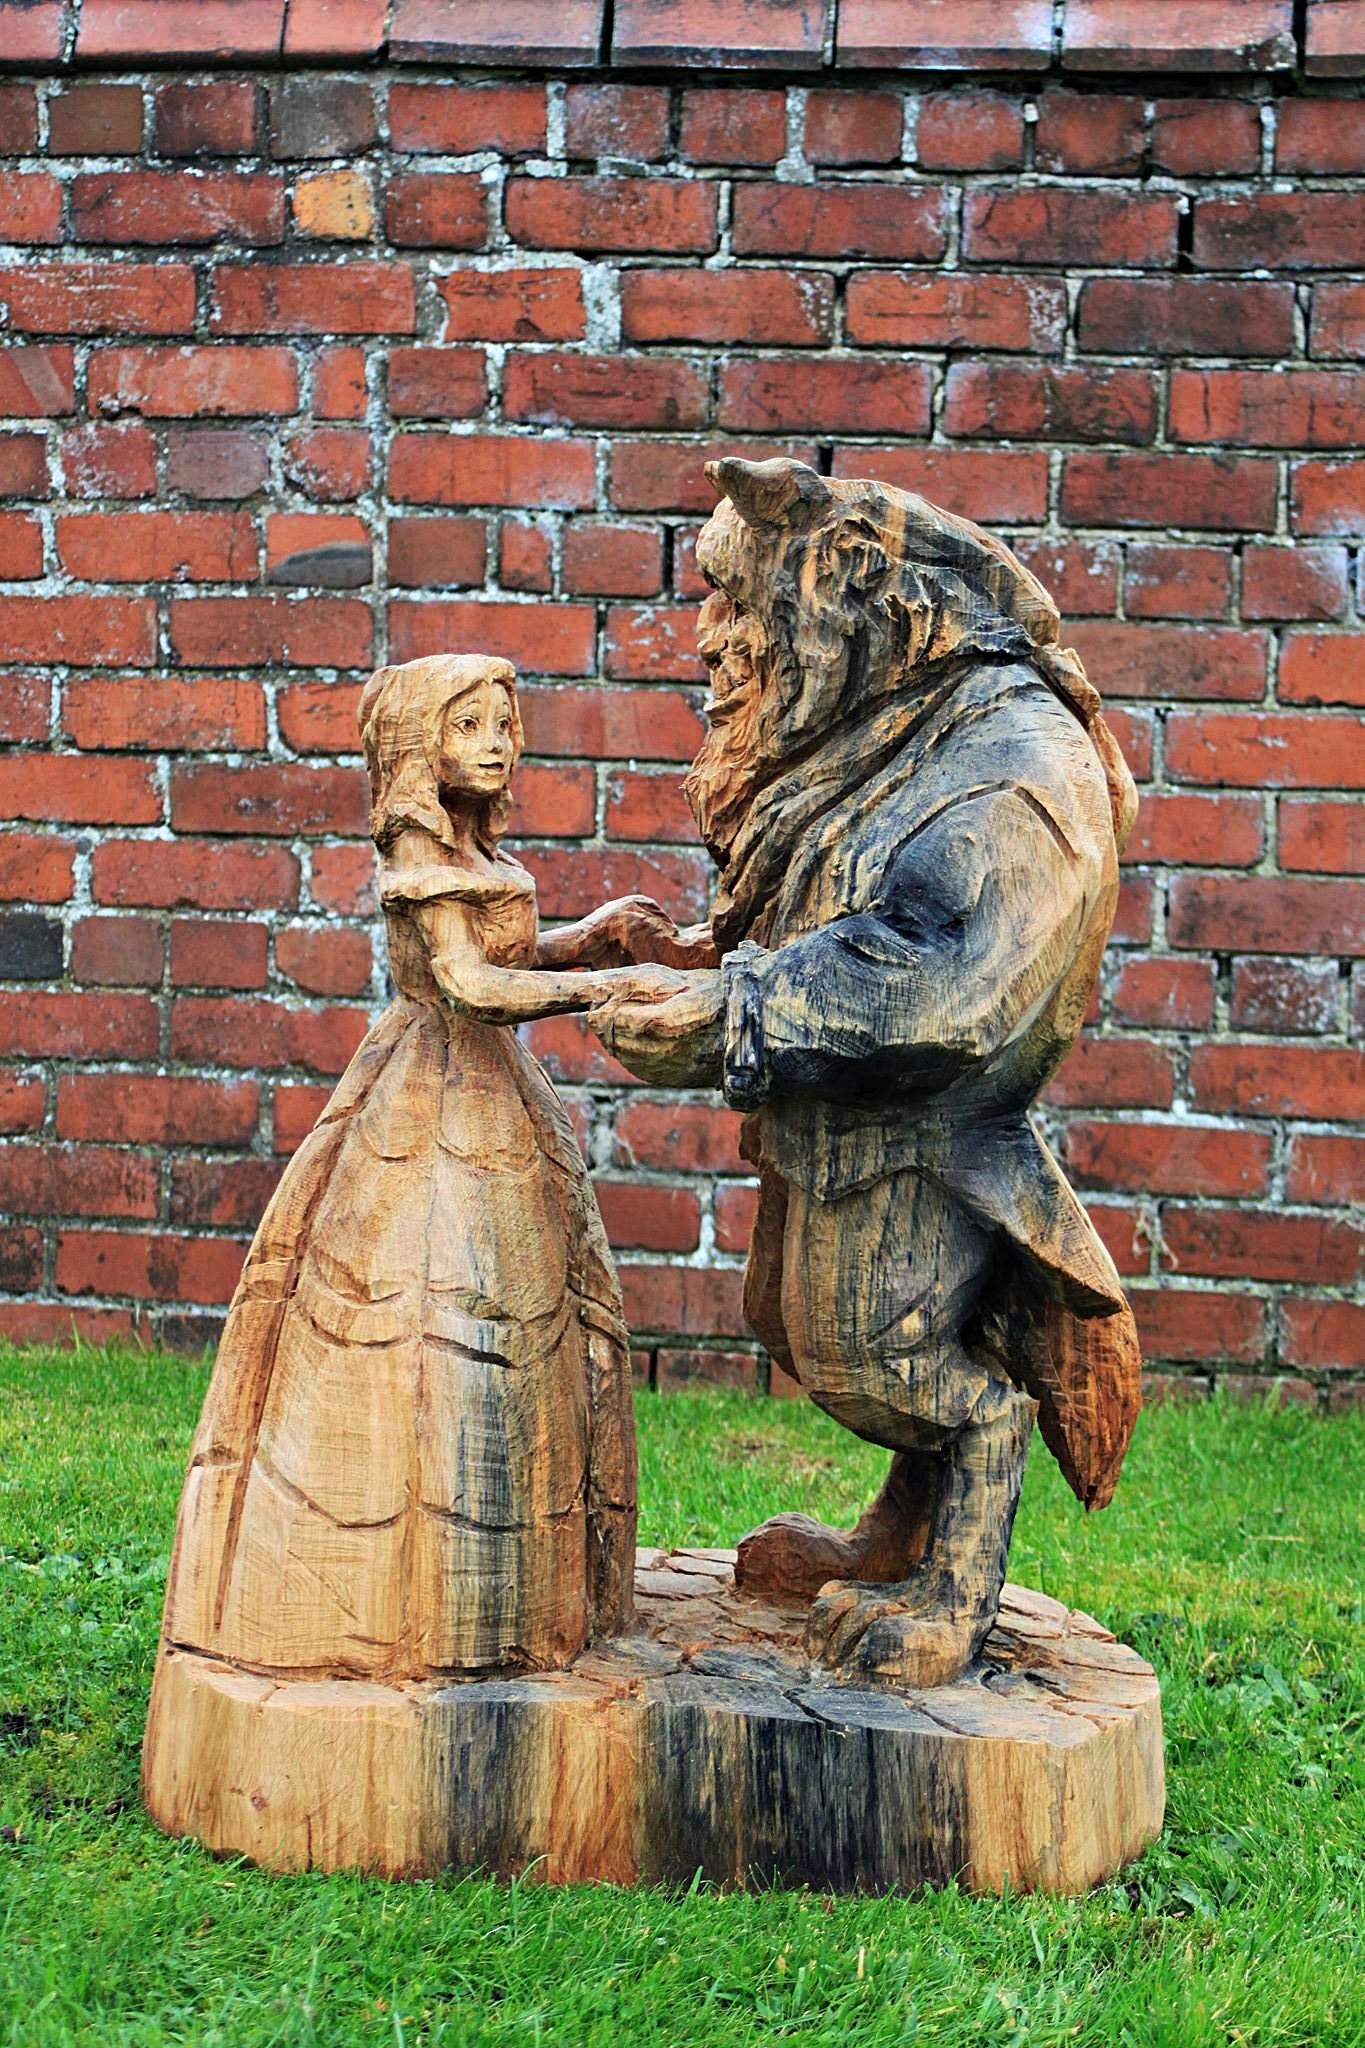 Romance-themed sculptures by Simon O'Rourke. A wooden sculpture of Beauty and the Beast dancing together.